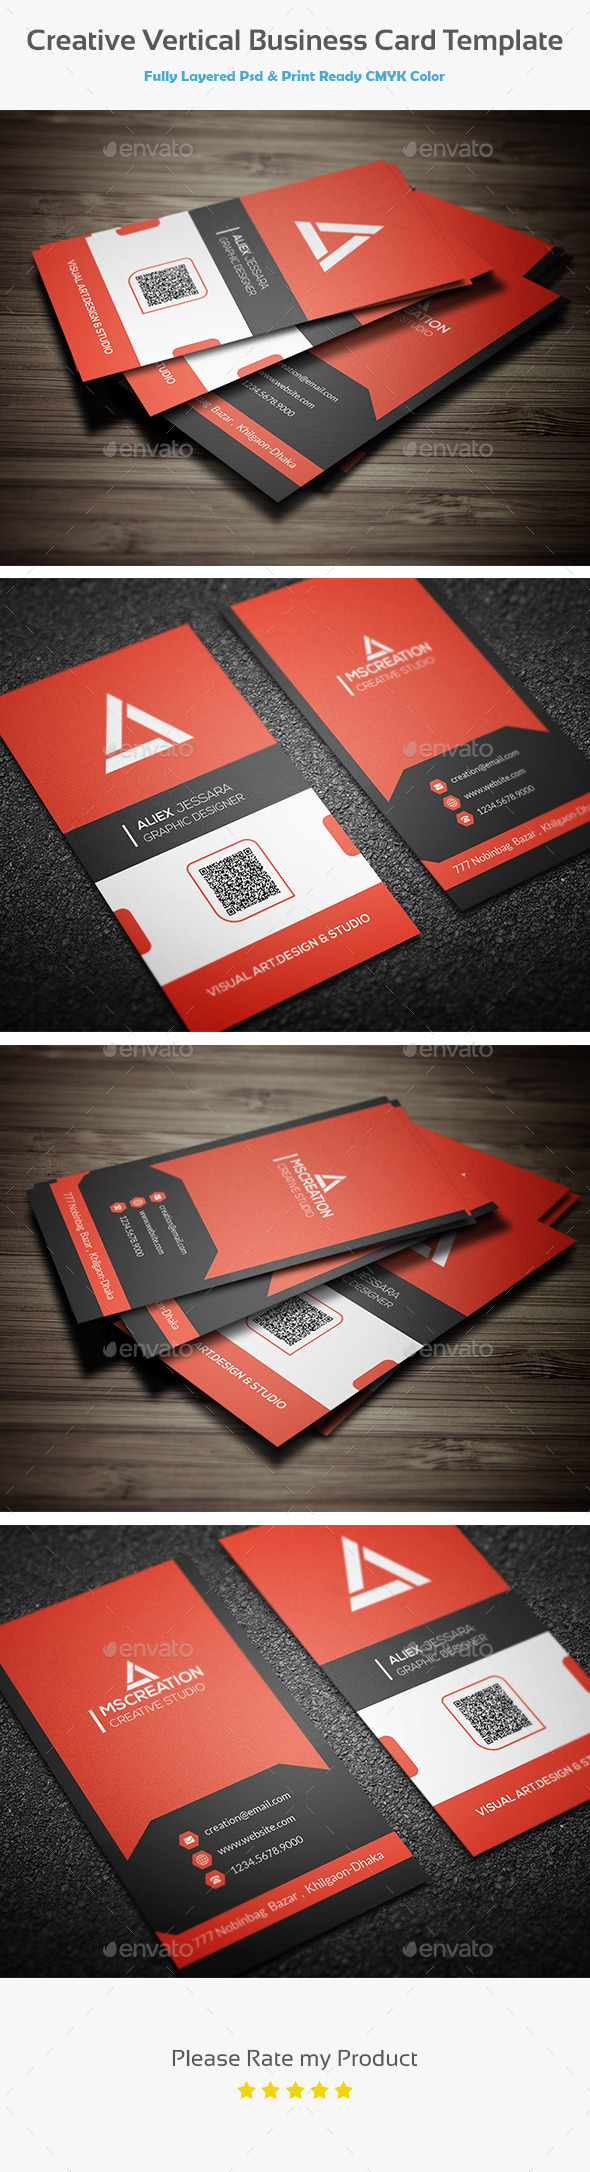 GraphicRiver Creative Vertical Business Card Template 10438513